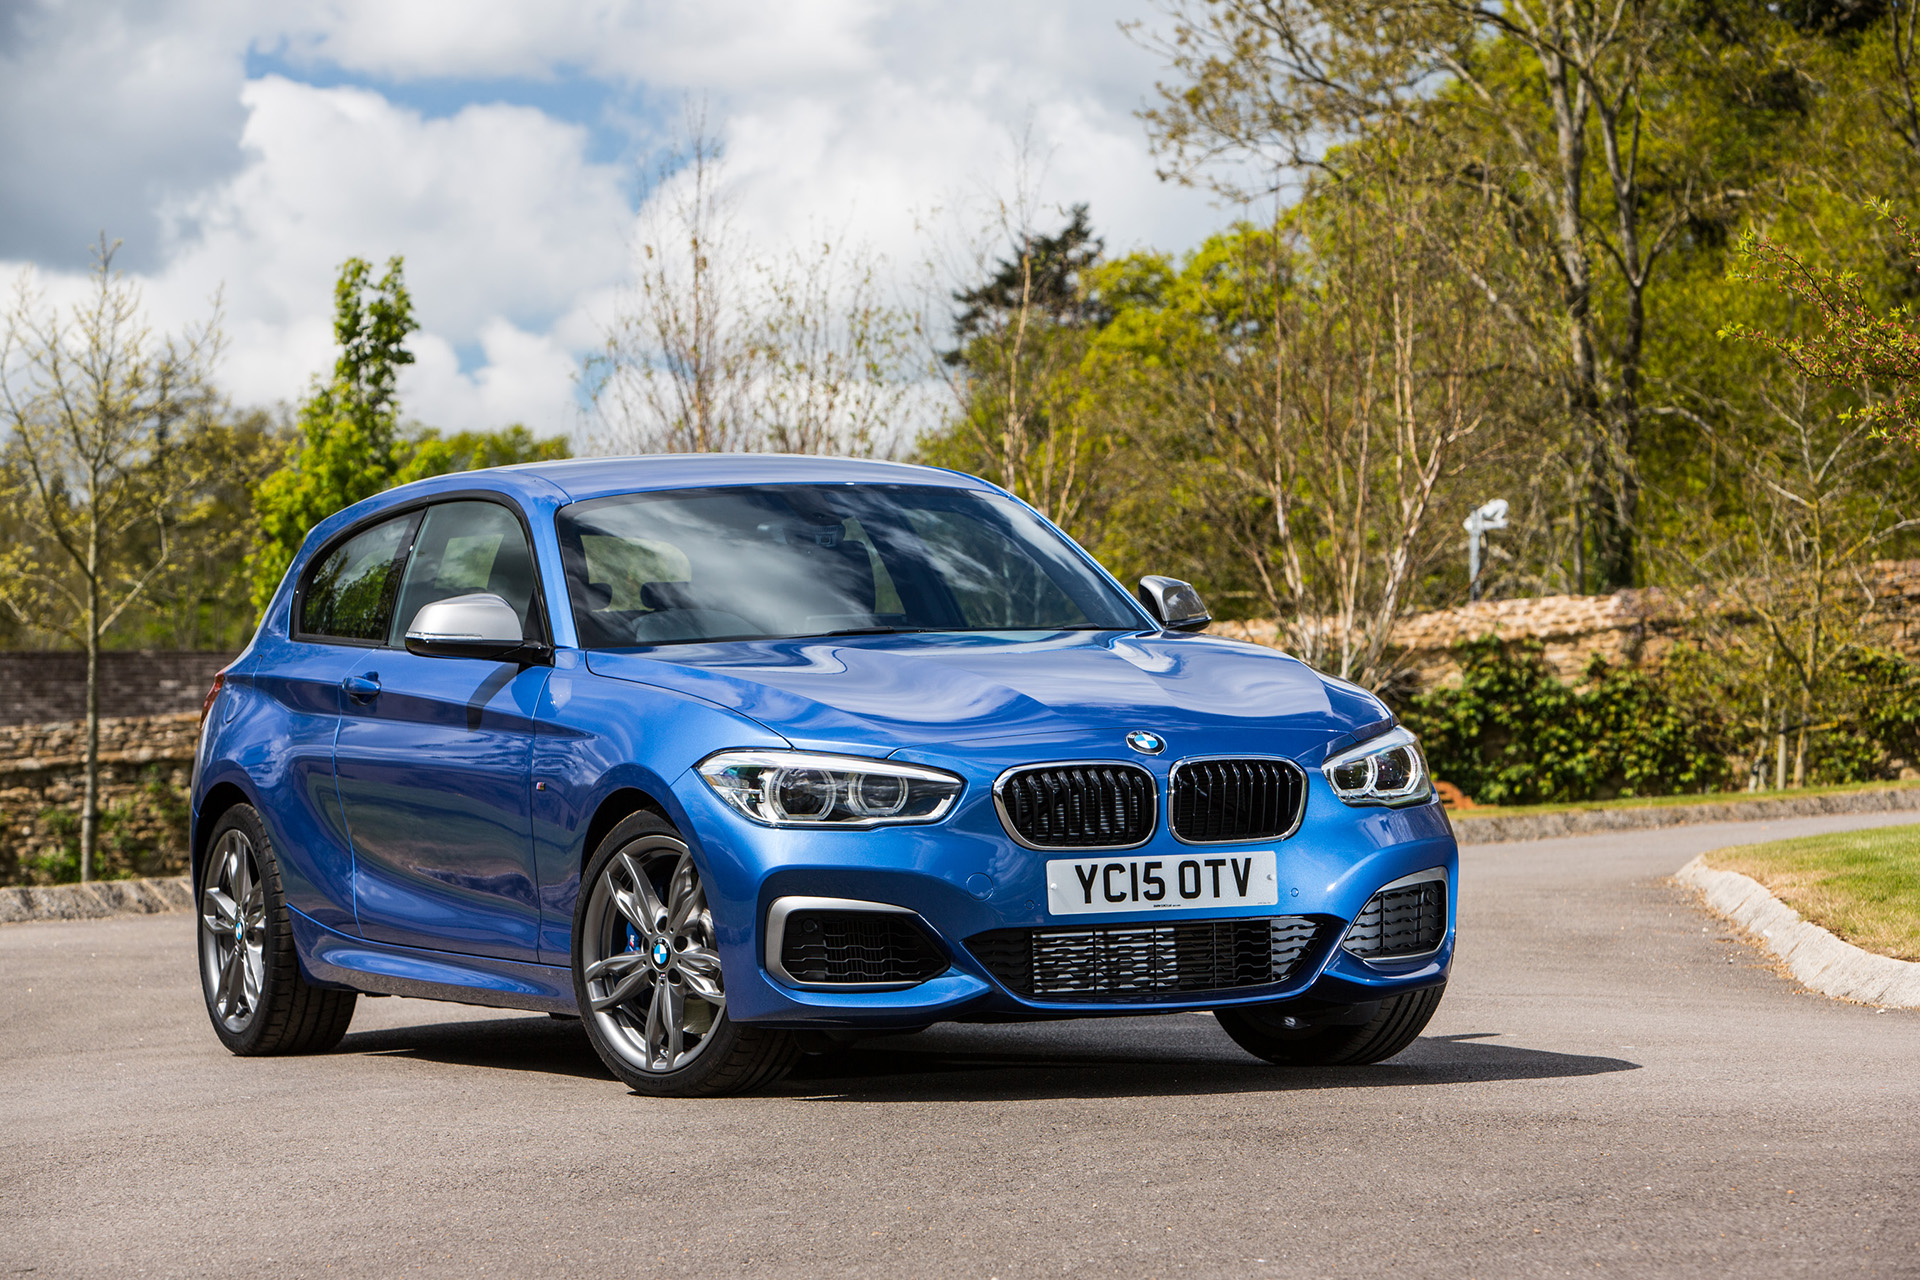 Bmw M135i Showcased In New Colors